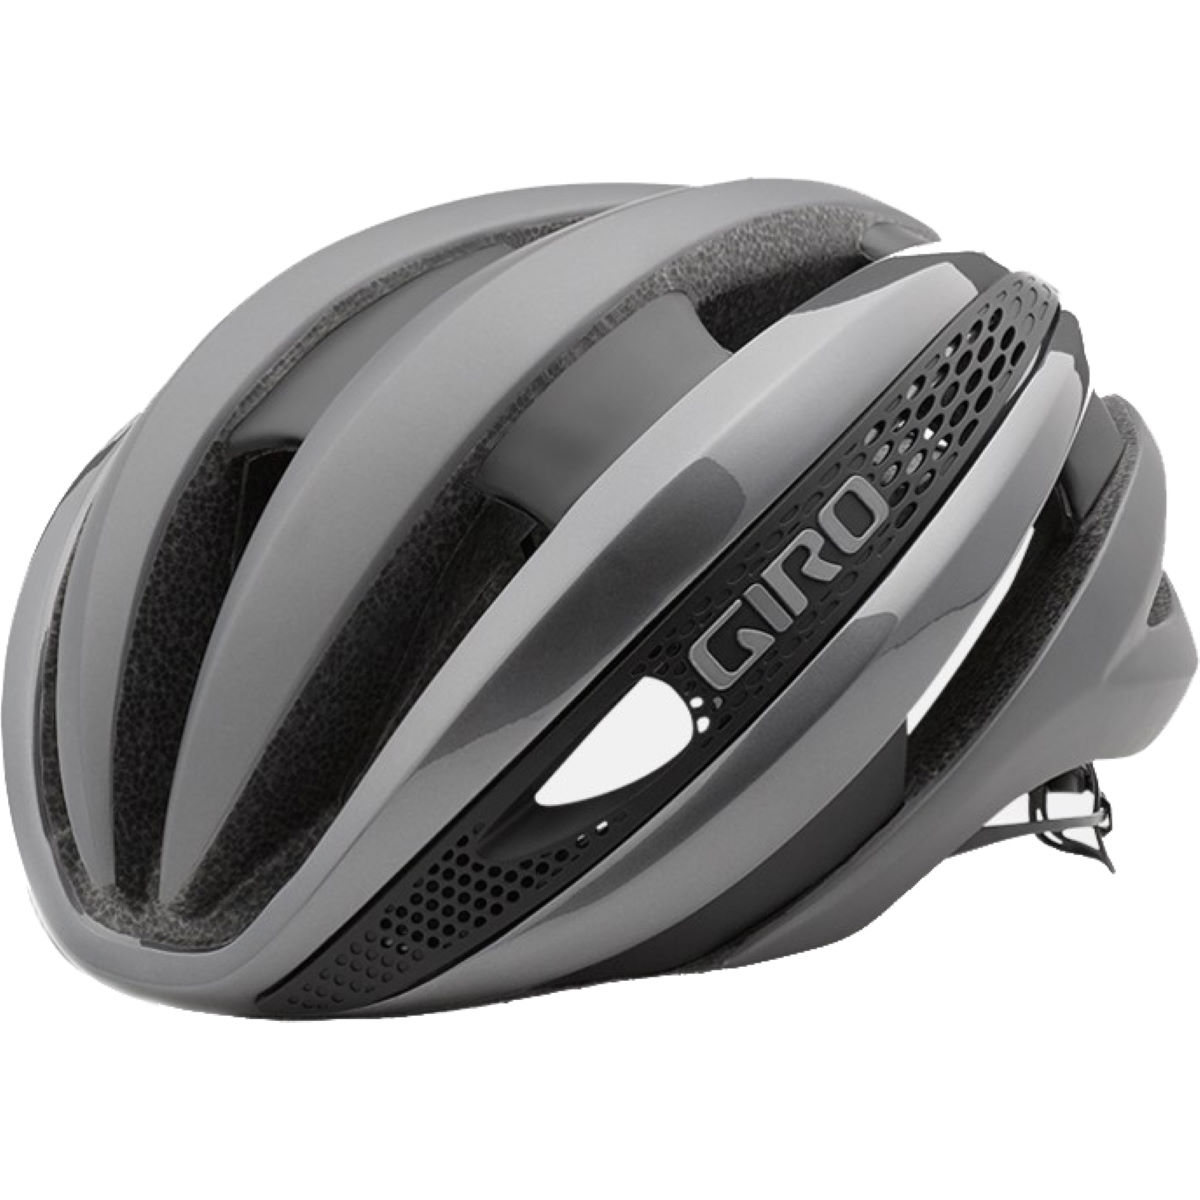 Casque Giro Synthe - Medium 55-59cm Titane Casques de route